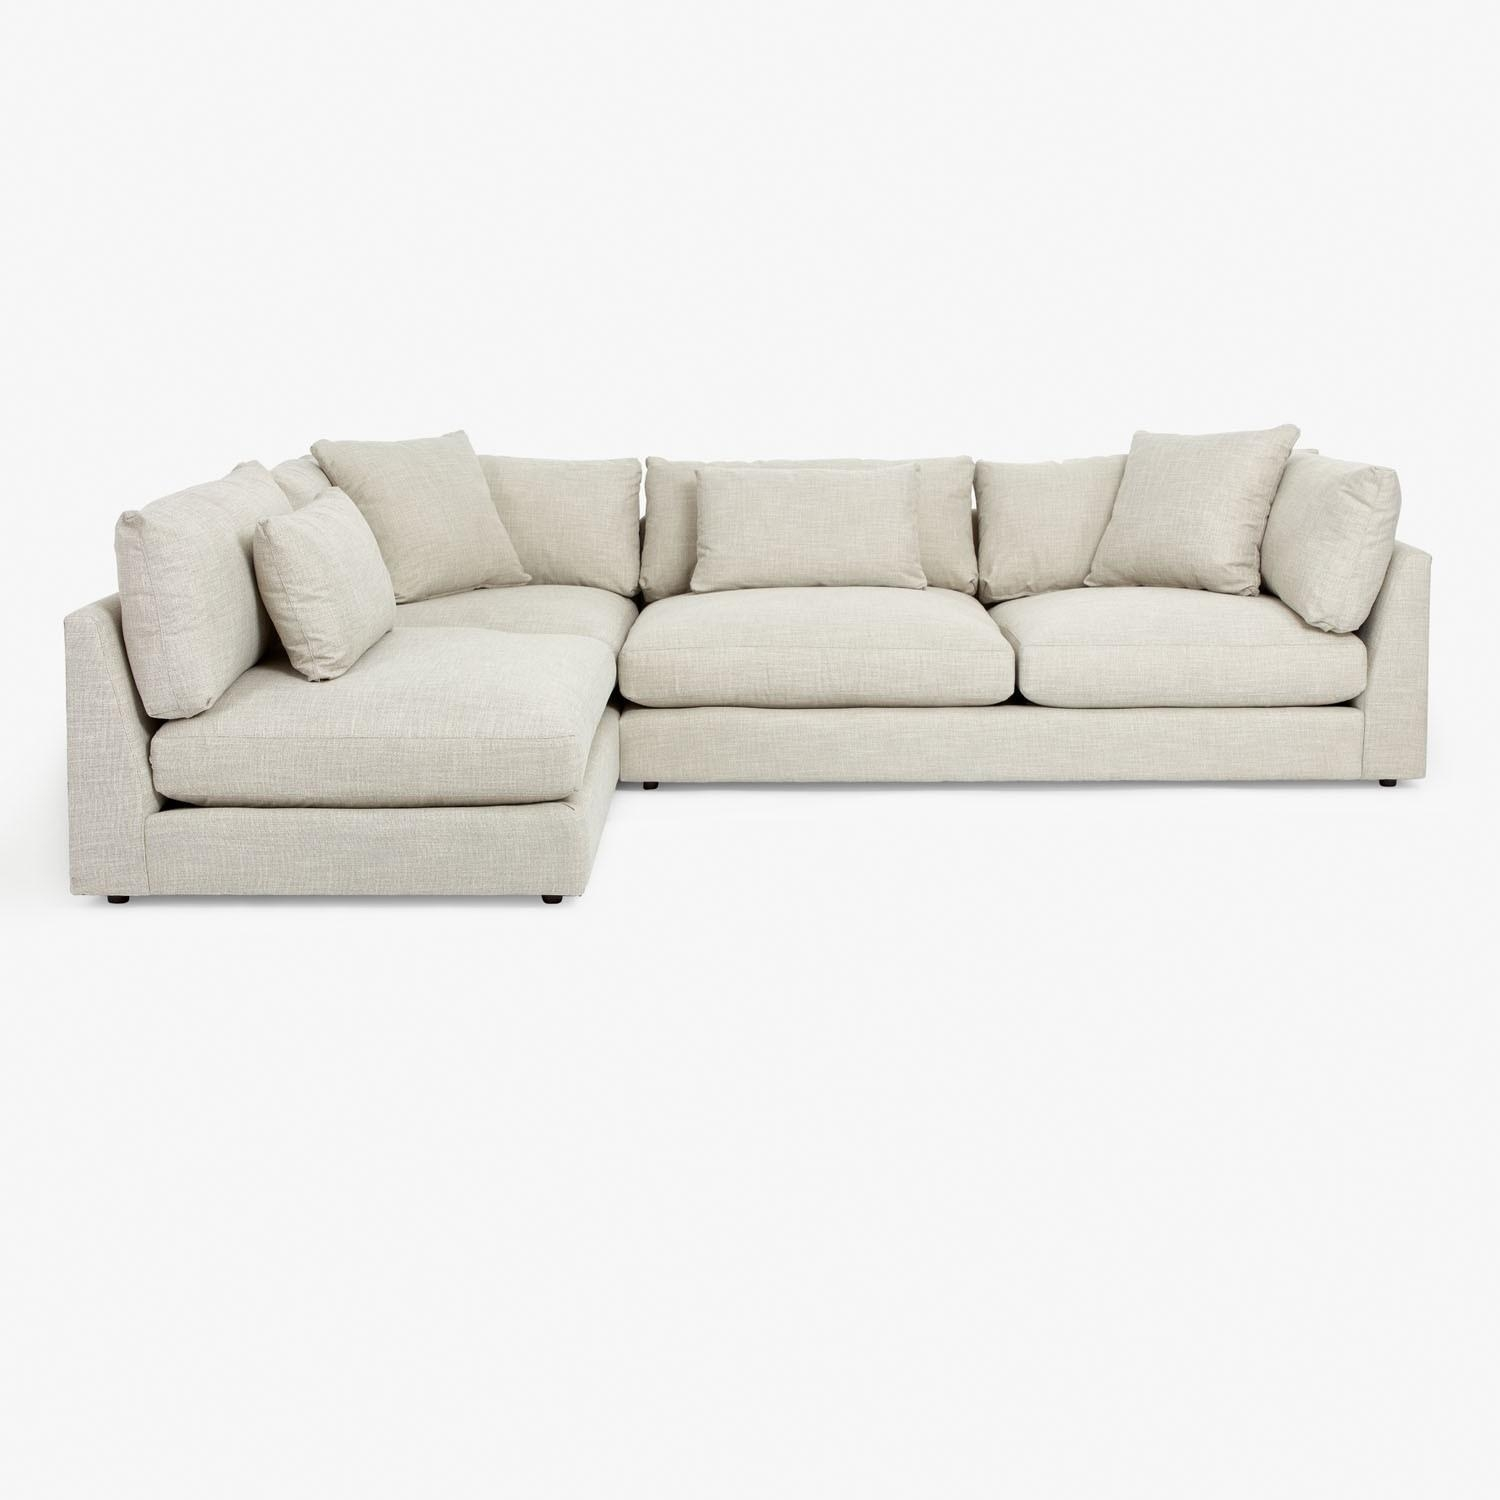 Cobble Hill Delancey Sectional – Abc Carpet & Home Within Cobble Hill Sofas (Image 6 of 20)